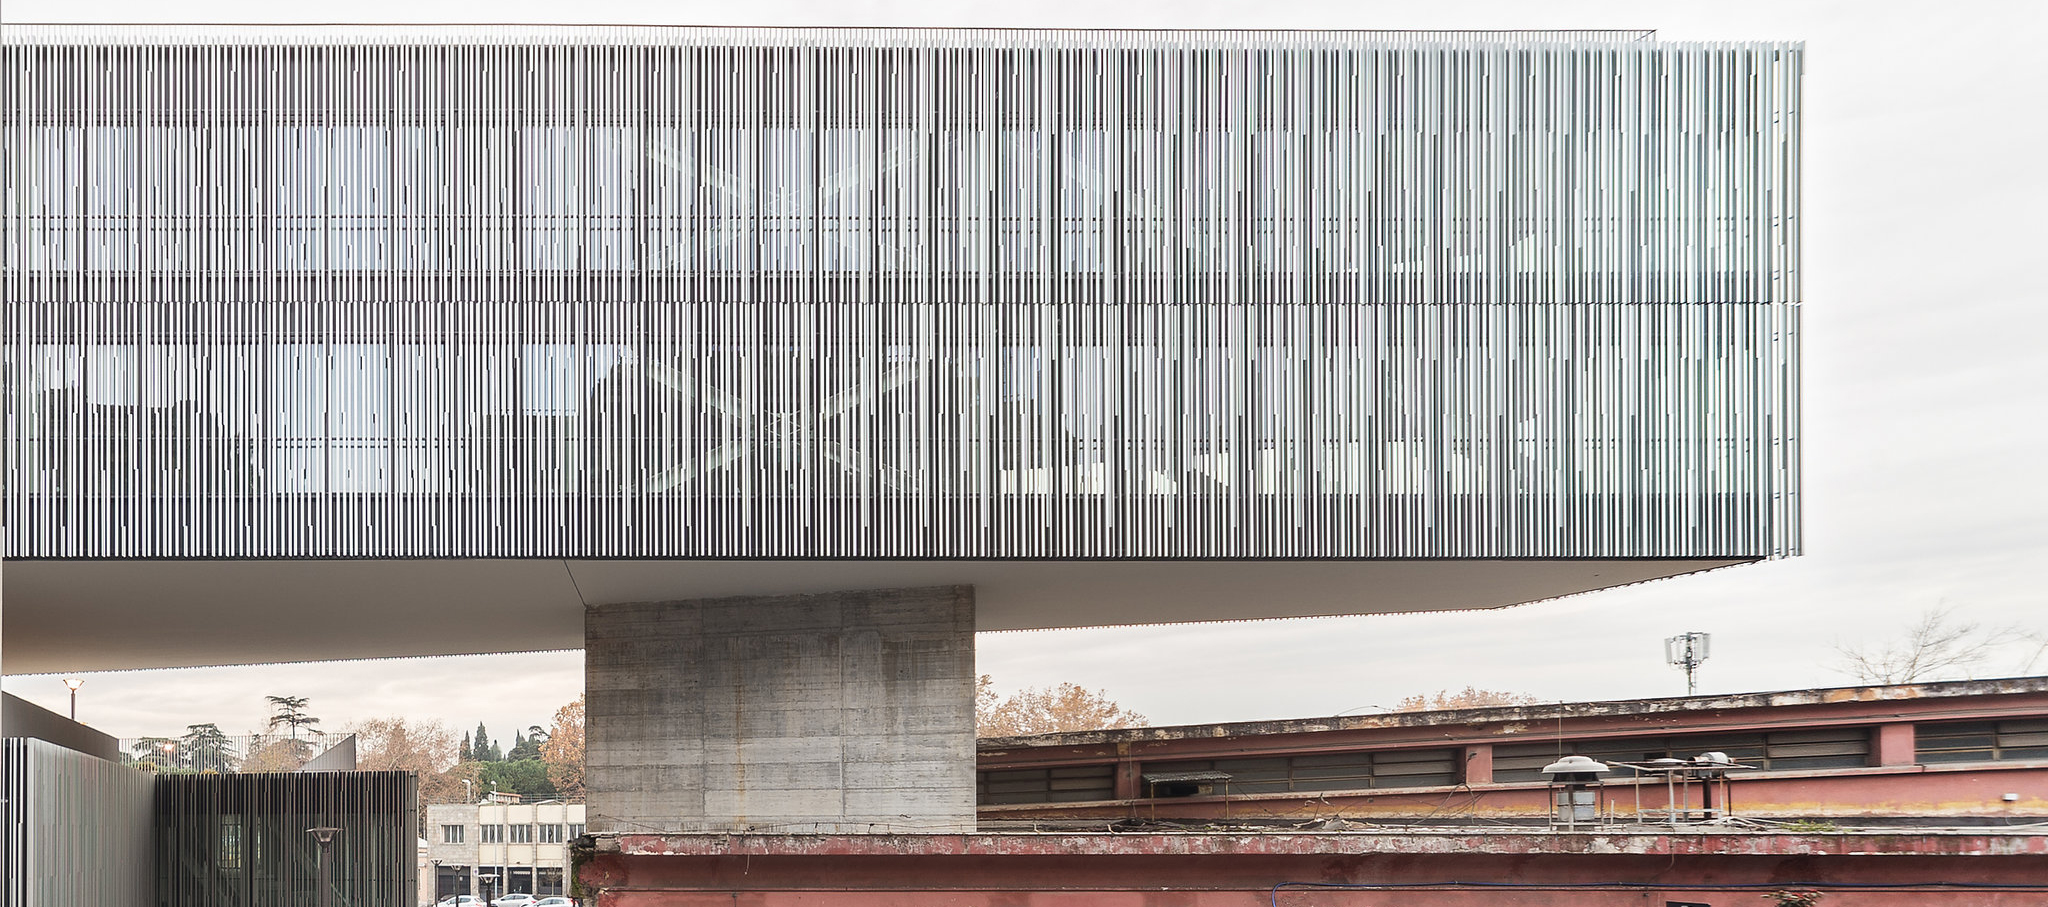 Citta del Sole in Rome, designed by Labics Studio. The project comprises a library and residential, office, retail, parking and public space. Photograph © Marco Cappelletti